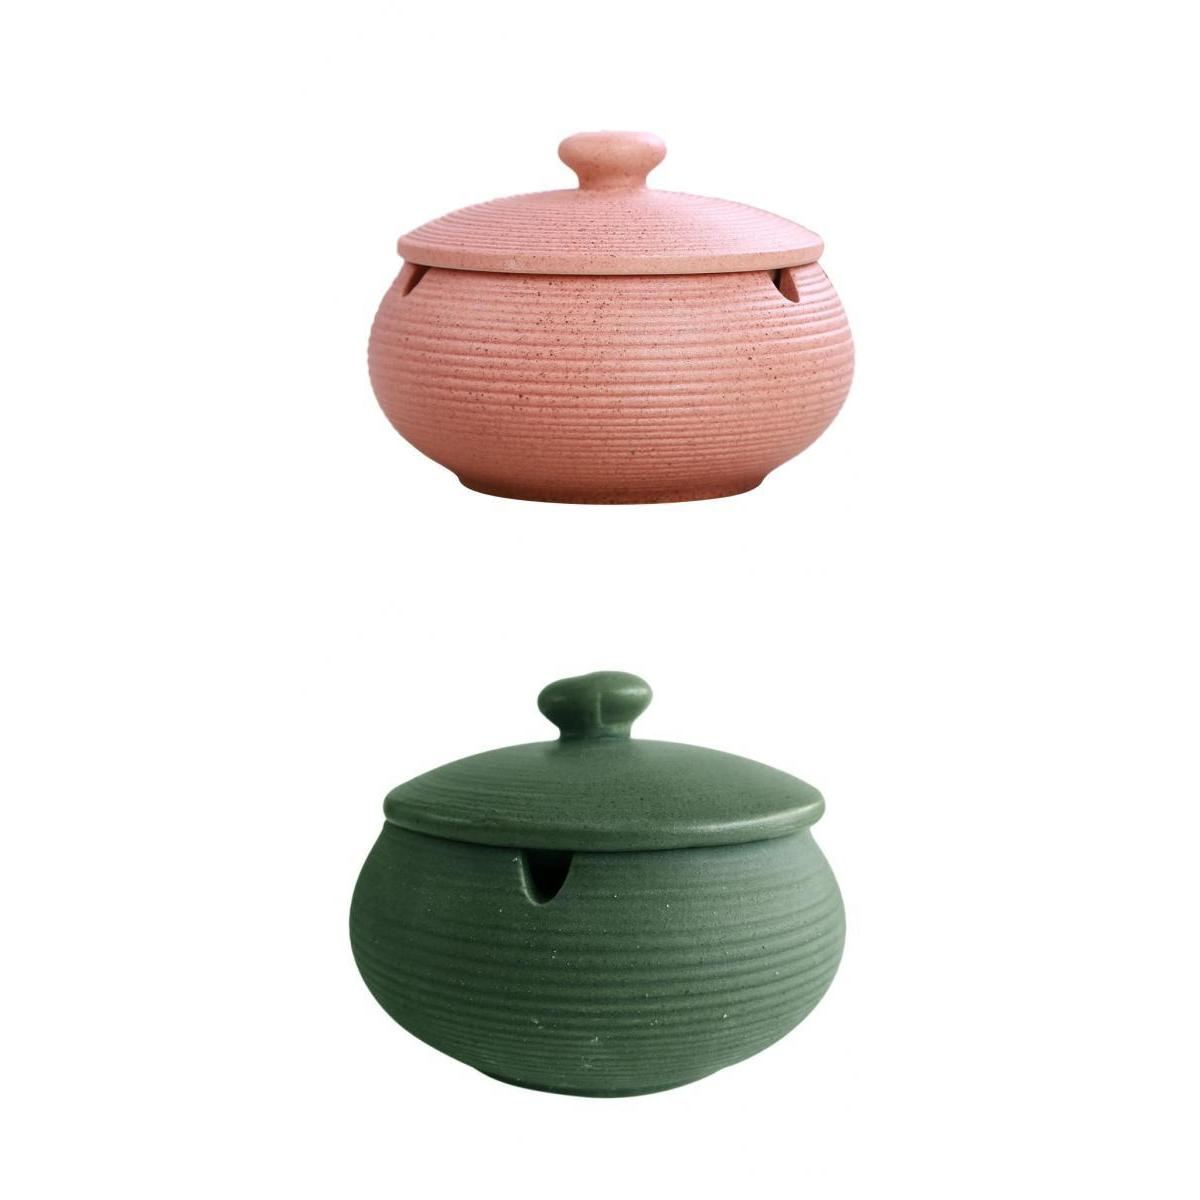 Ashtrays 2pcs Nordic Style Ashtray Ceramics Ashtray With Lid For Indoor And Outdoor Use Collectables Cruzeirista Com Br